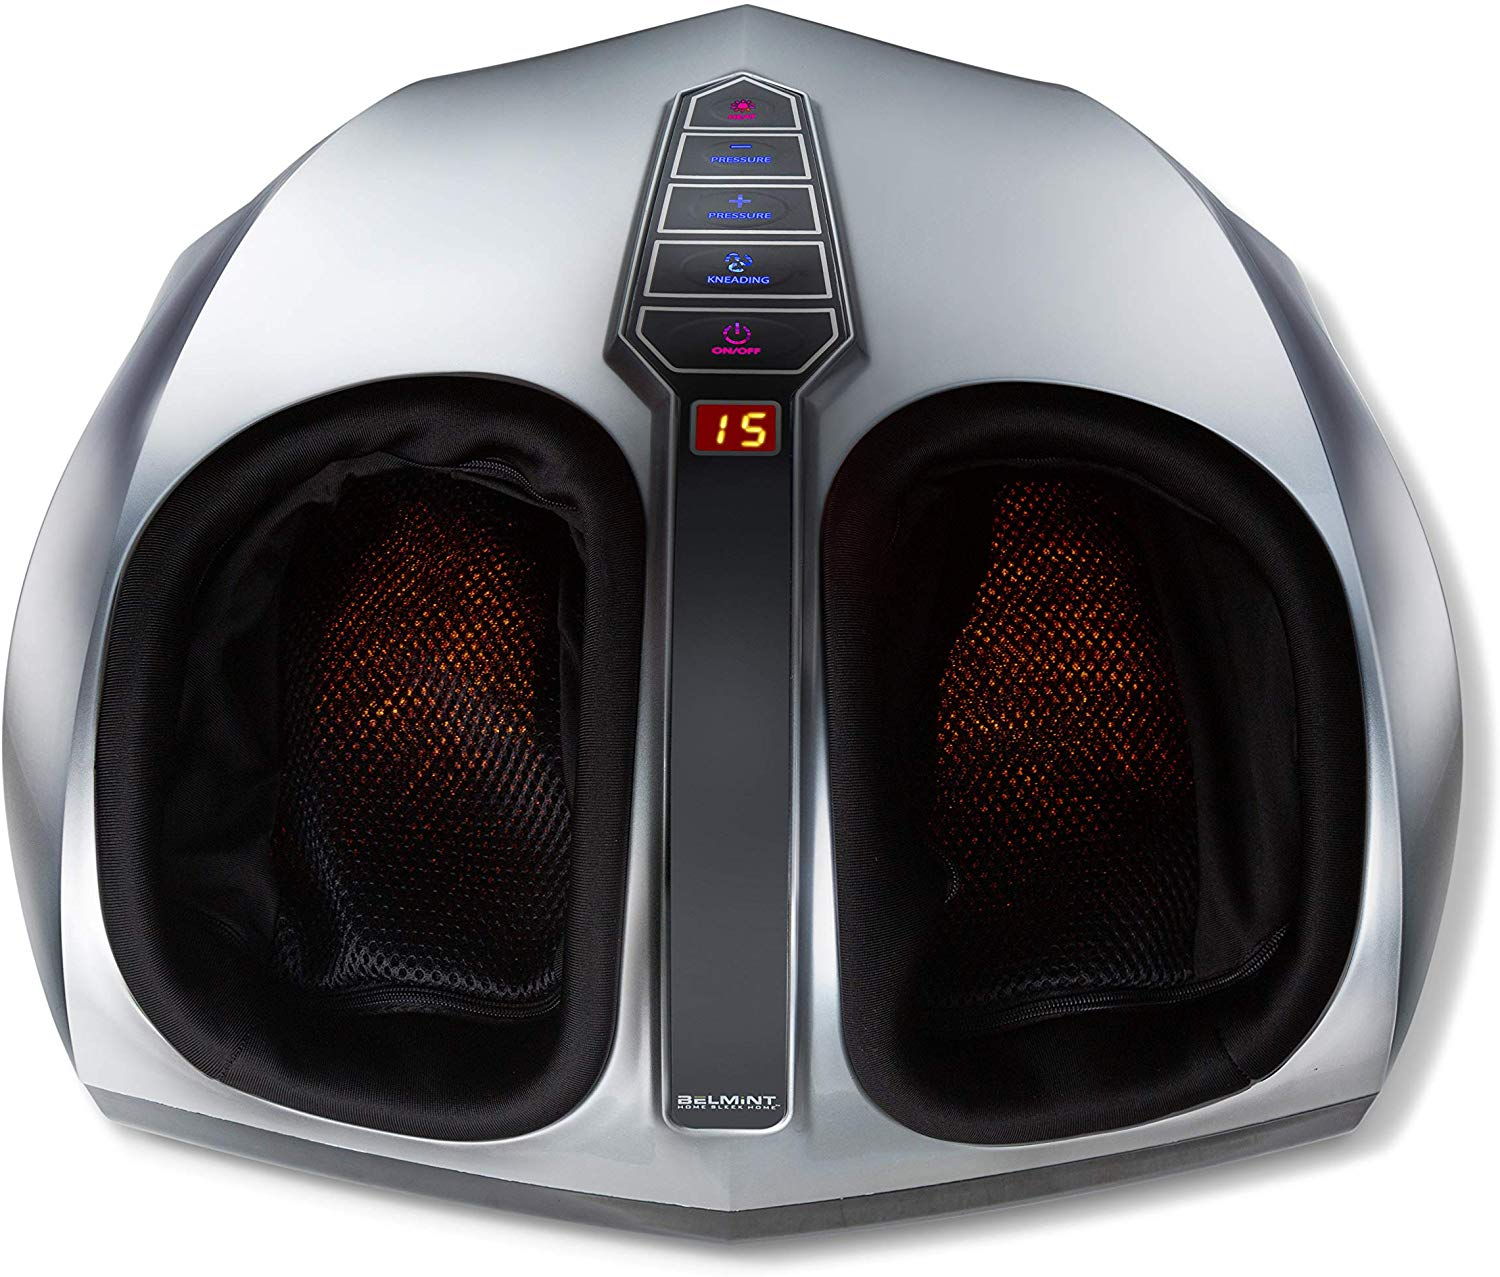 Belmint Shaitsu foot massager with heat